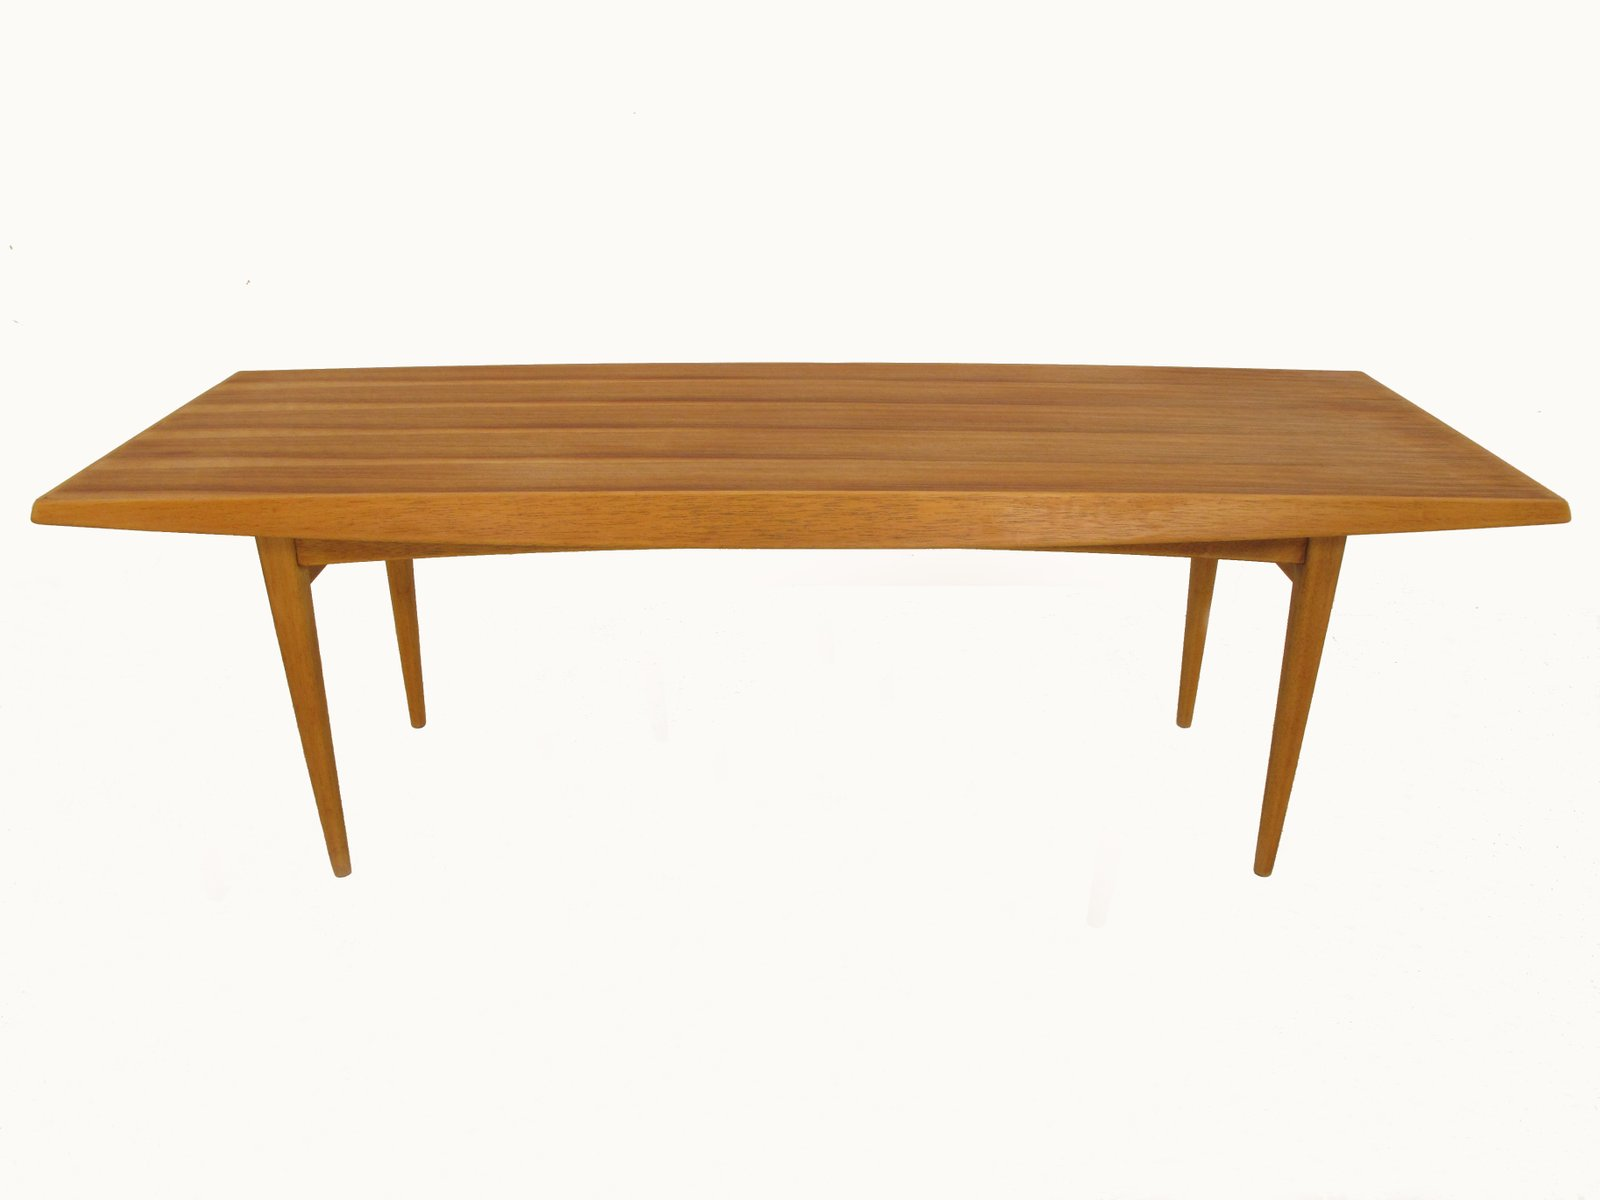 Coffee Table By Trevor Chinn For Gordon Russell 1950s For Sale At Pamono